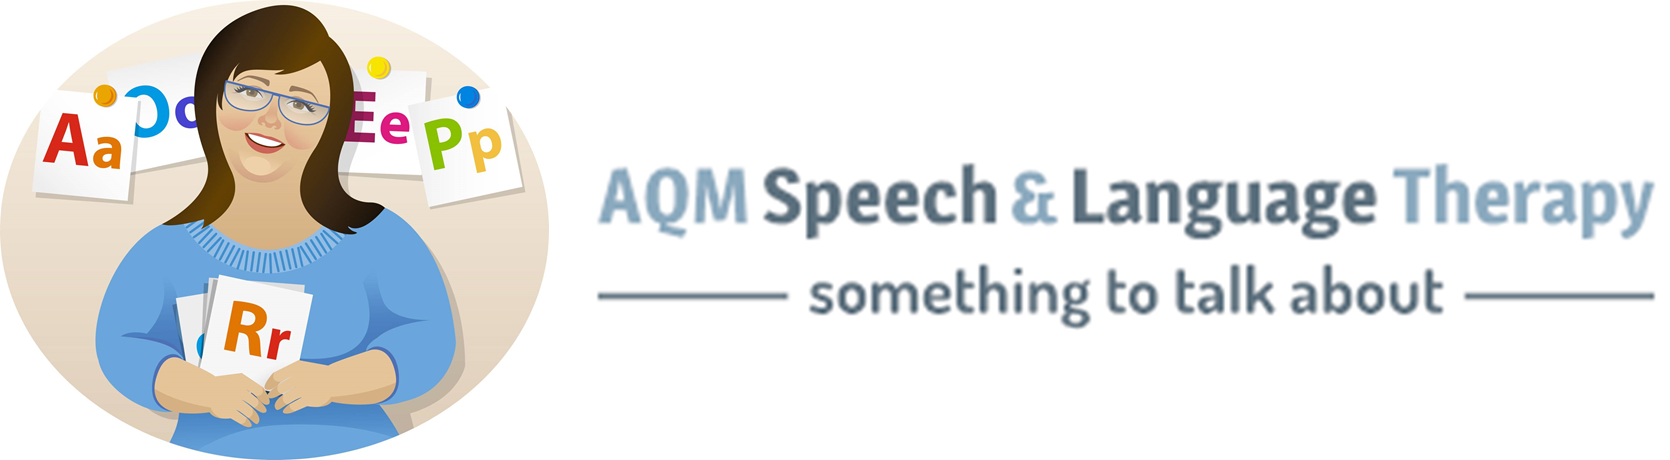 AQM Speech & Language Therapy